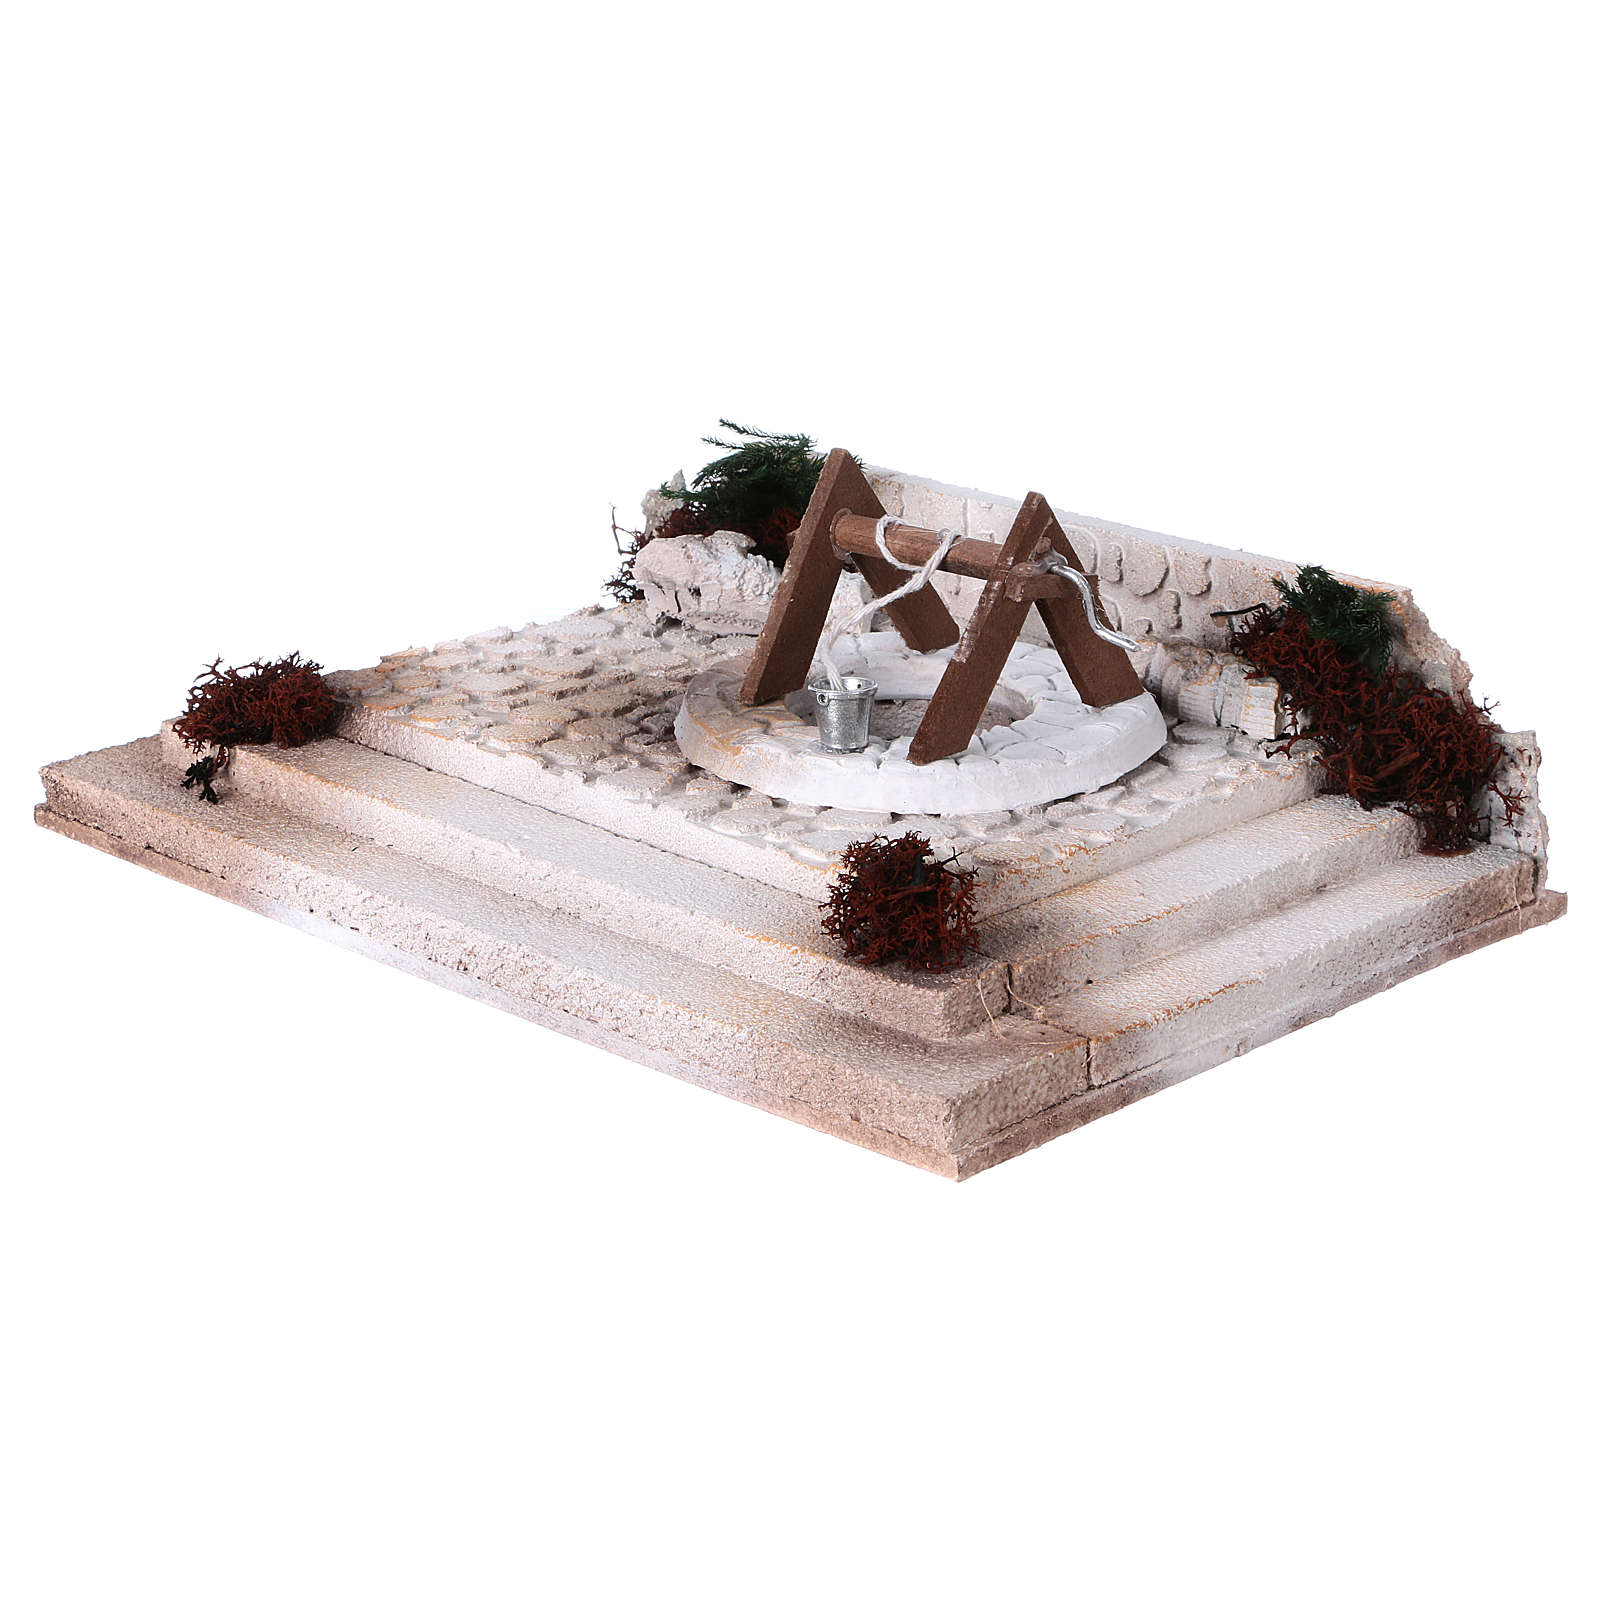 Arab square with well 10x30x20 cm for 8-10 cm nativity scene 4